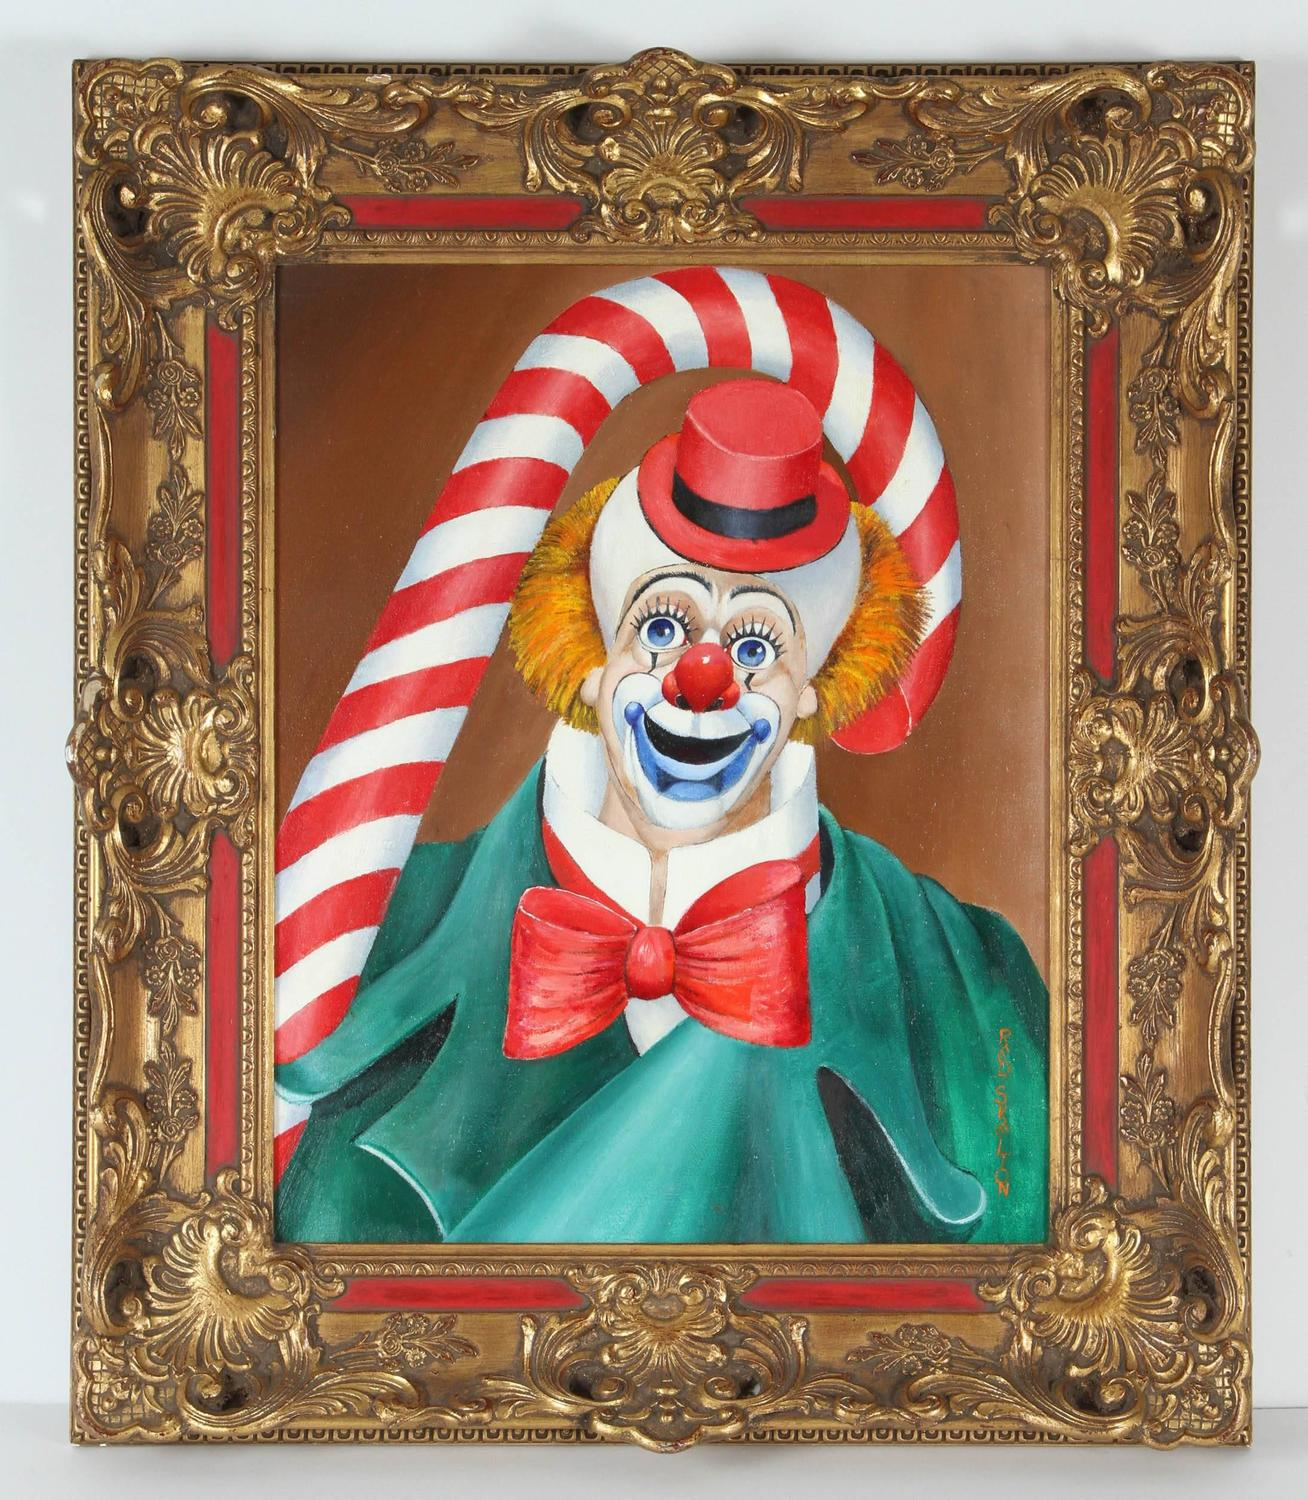 Original signed oil painting of clown by red skelton for for Original oil paintings for sale by artist